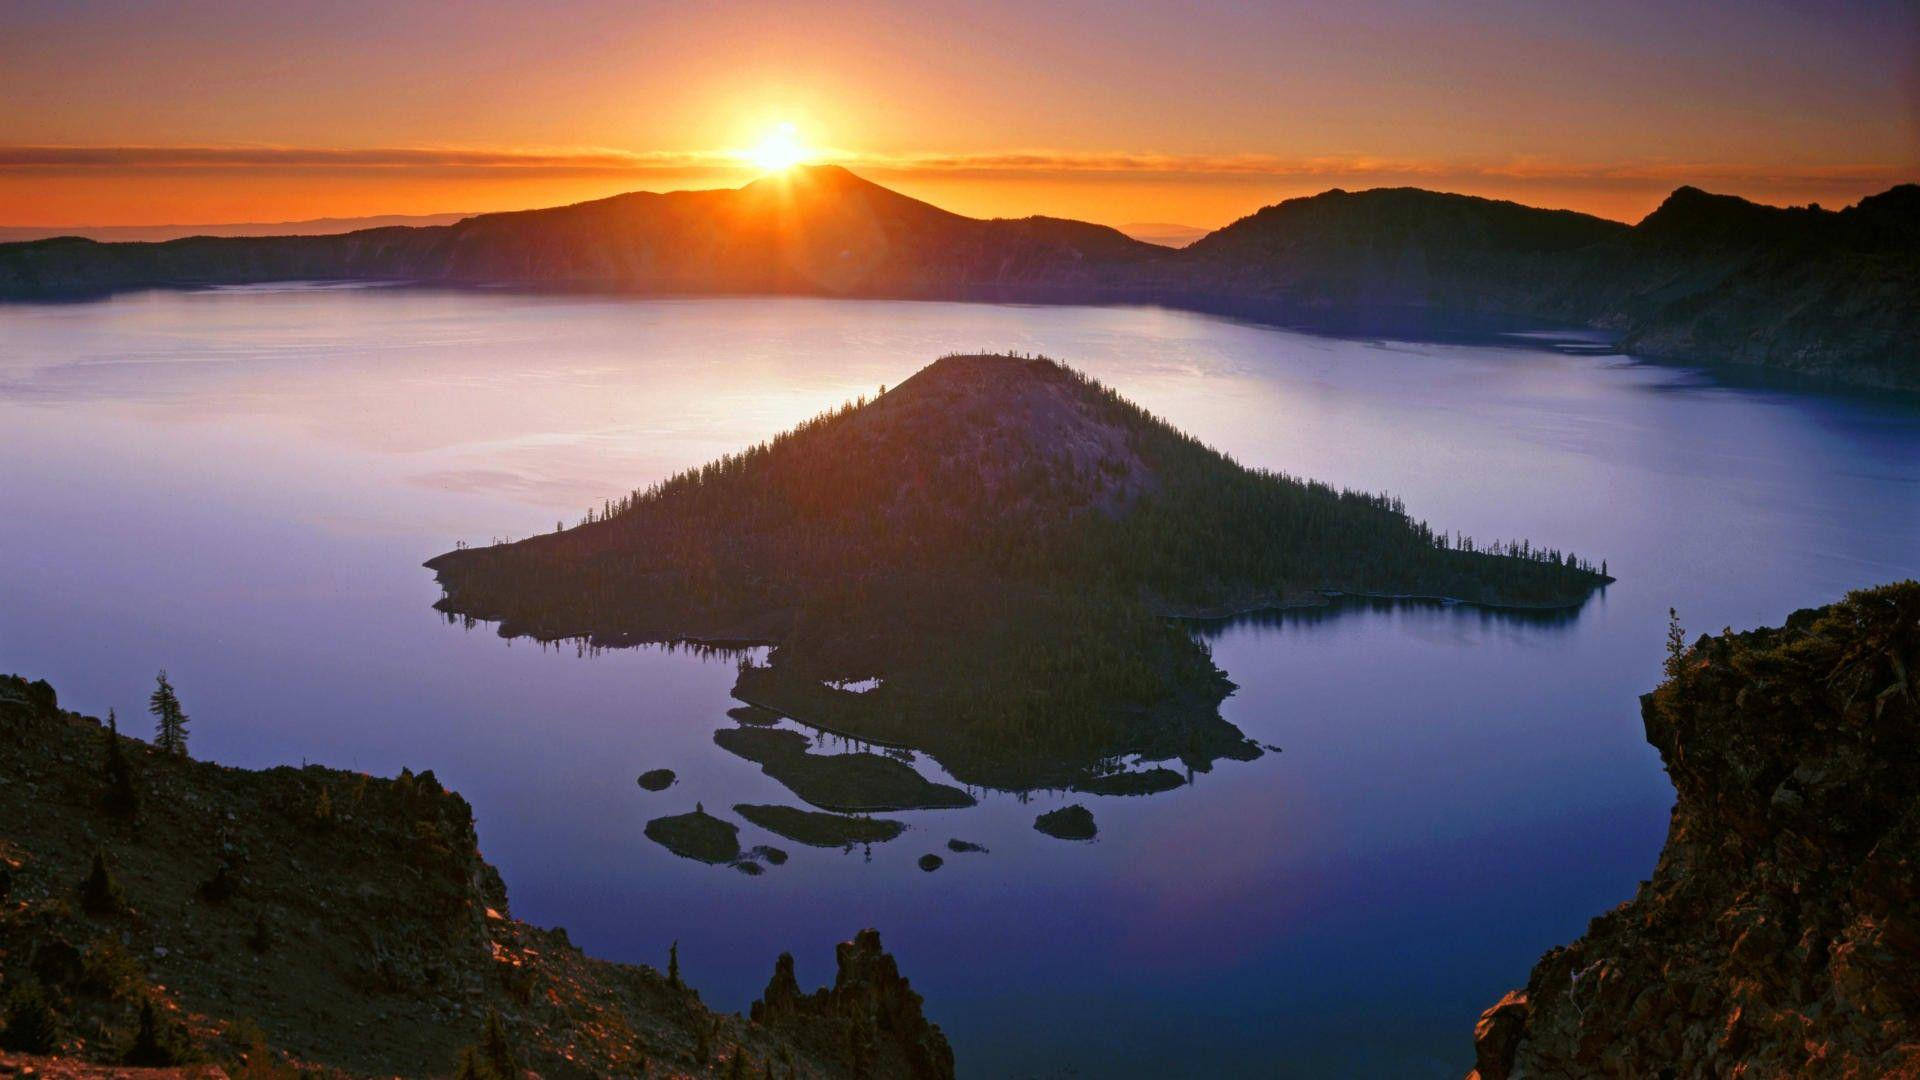 Oregon Wallpaper Collection For Free Download | HD Wallpapers ...